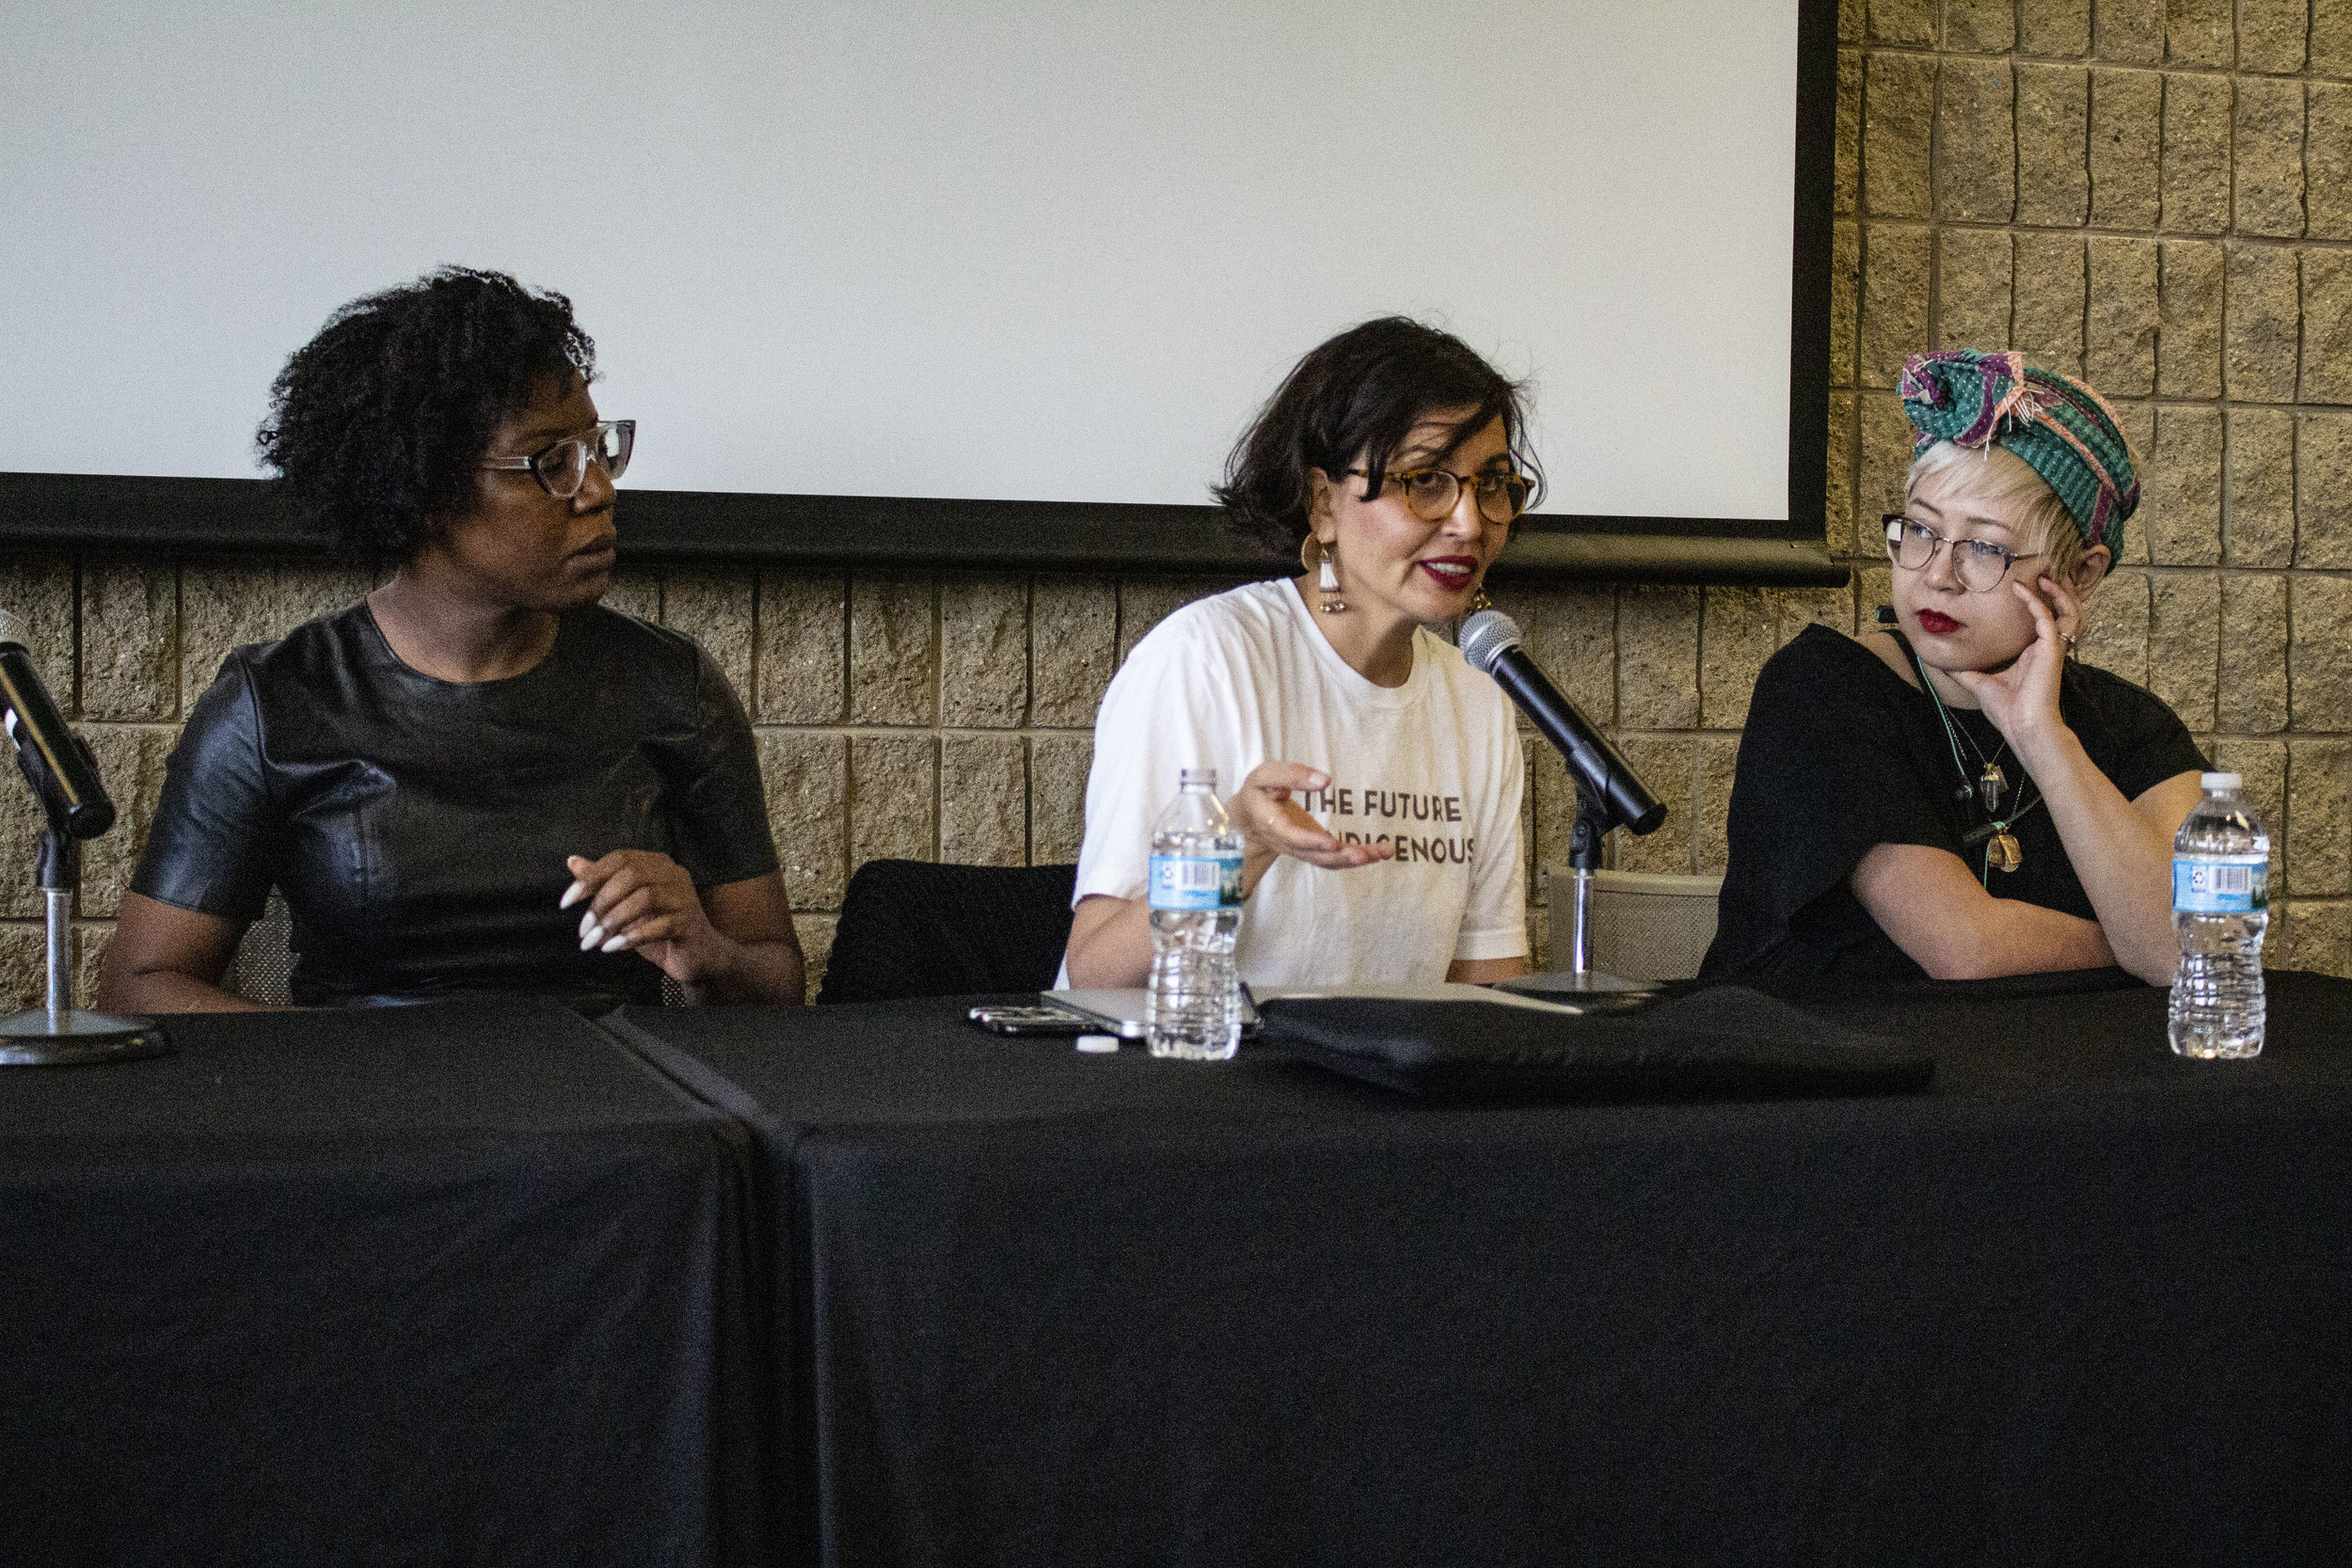 Lesley Nneka Arimah, Layli Long Soldier, and Esmé Weijun Wang at the Northwestern Spring Writers' Festival.